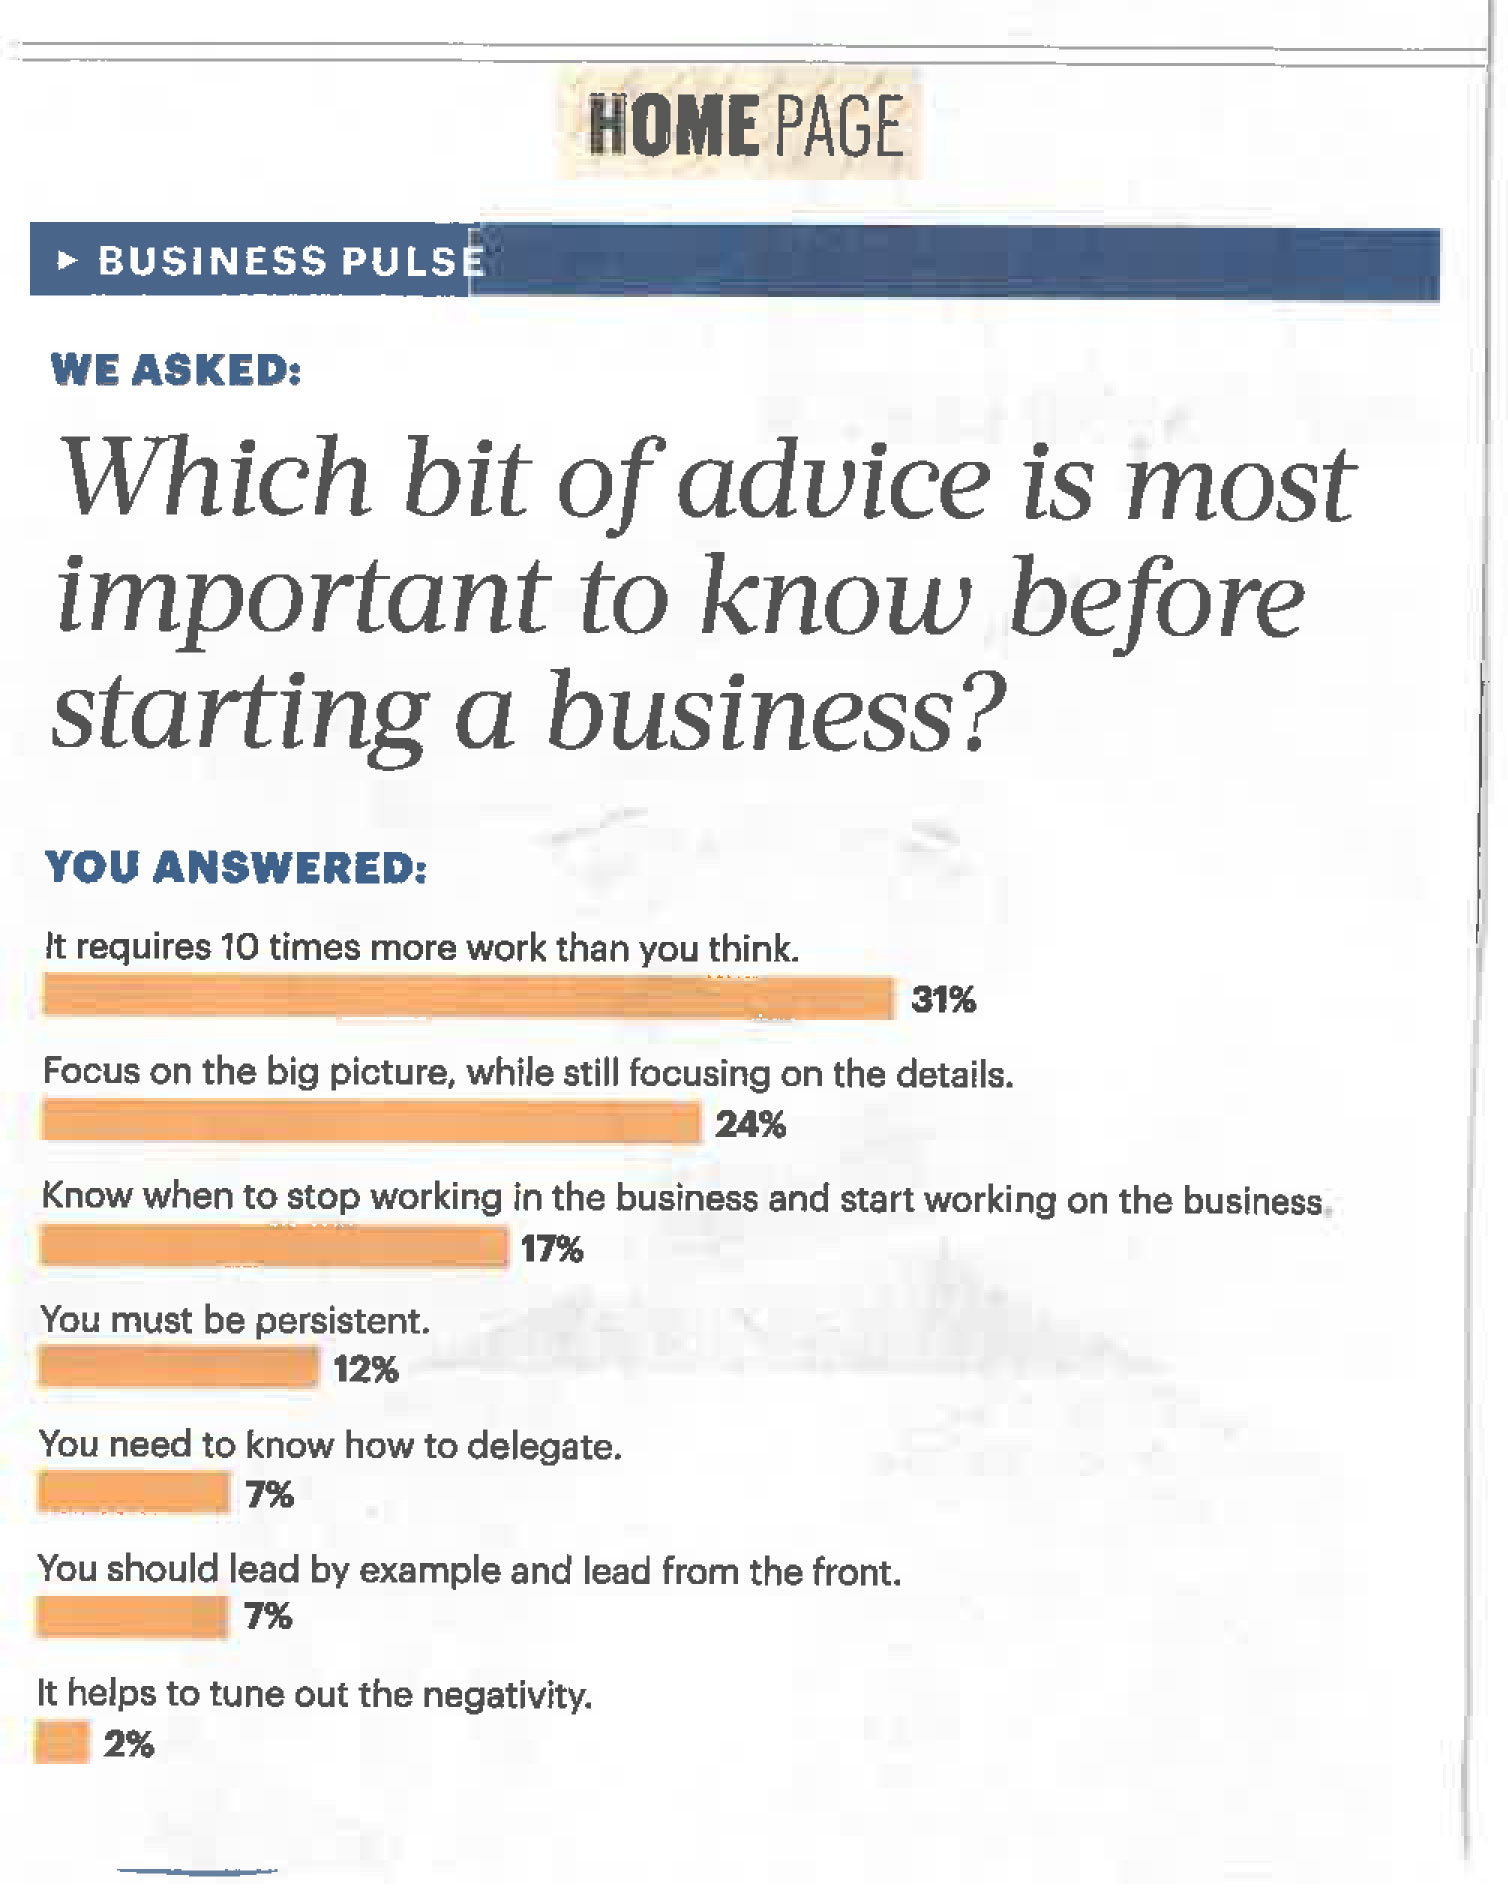 Survey: Advice before starting a business